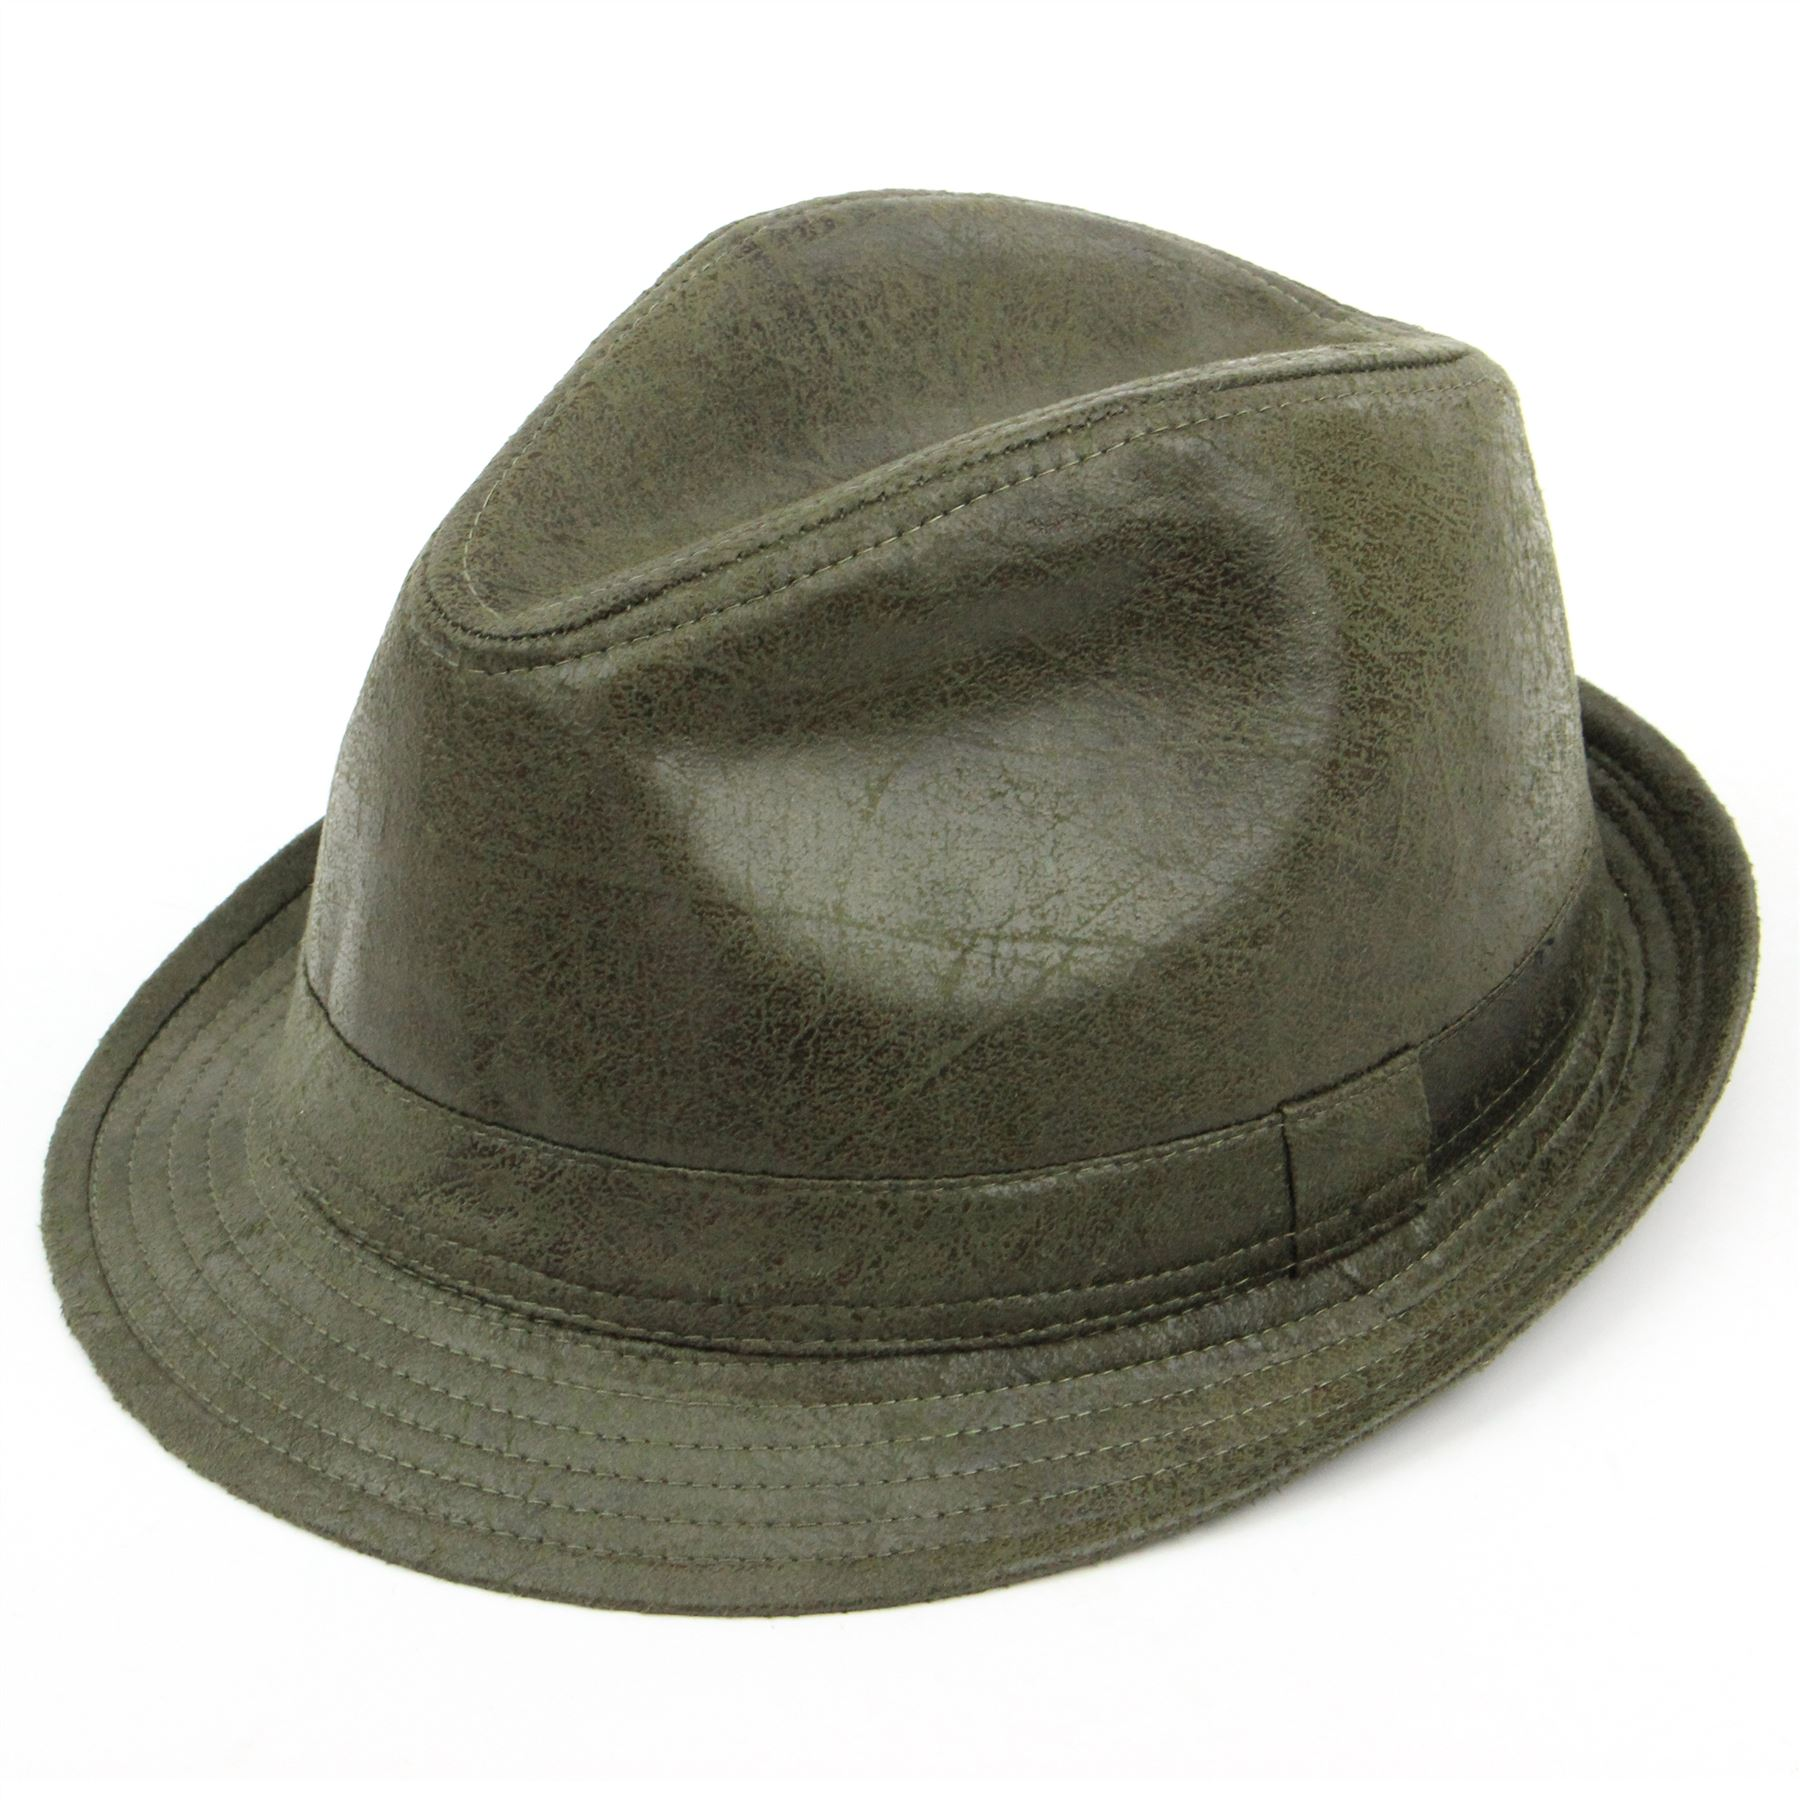 Details about Trilby Hat OLIVE GREEN Distressed Vintage Effect Fedora Cap  Brim Unisex 1faa80c36a2f